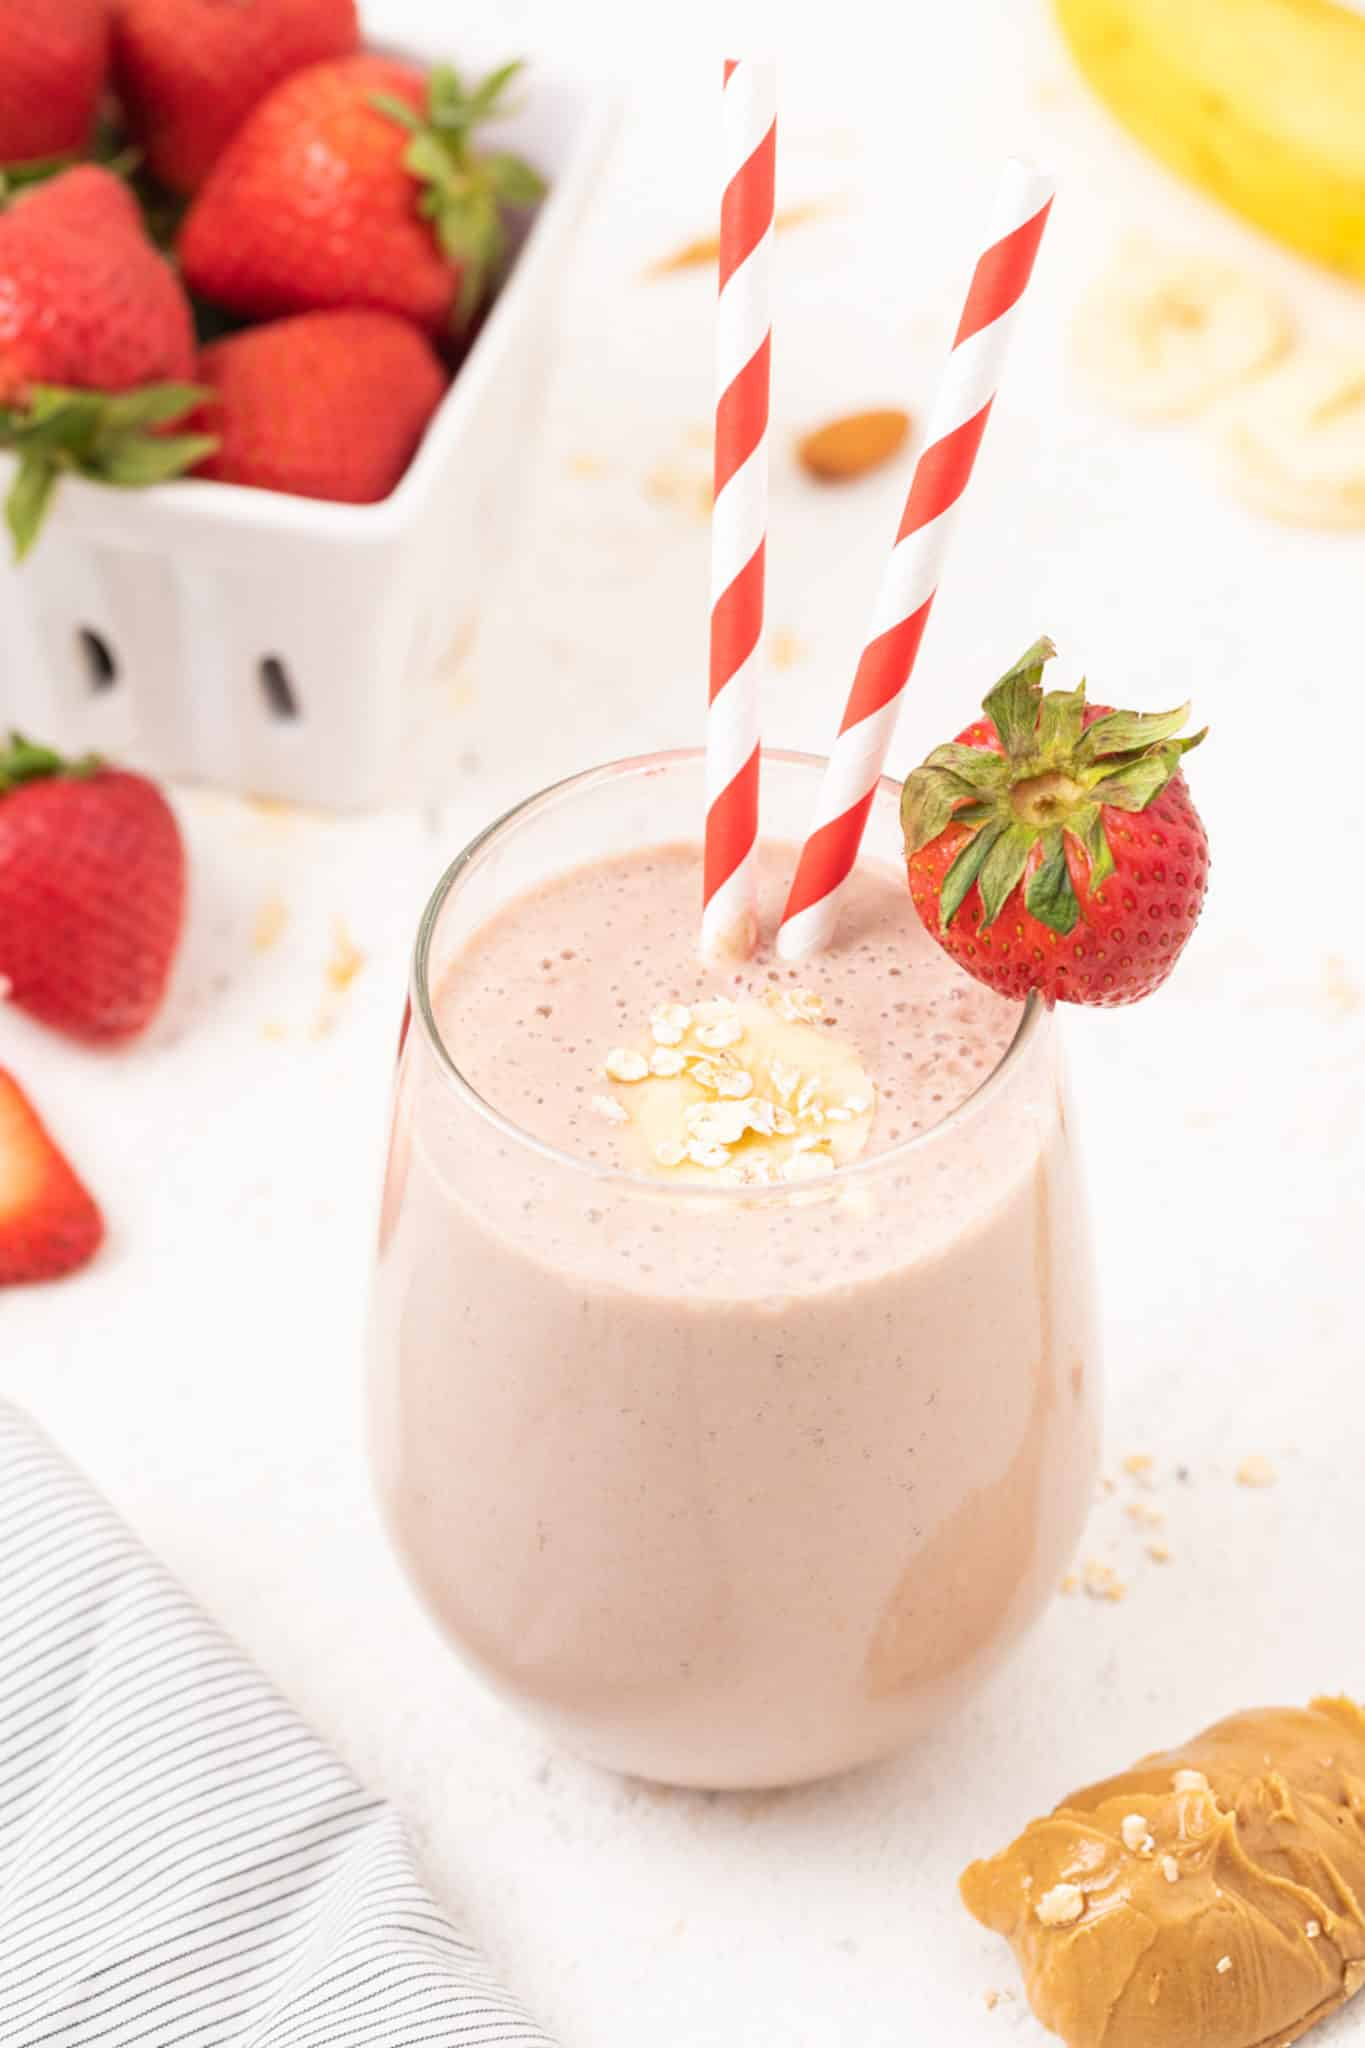 oat milk smoothie served in a glass with a red striped straw